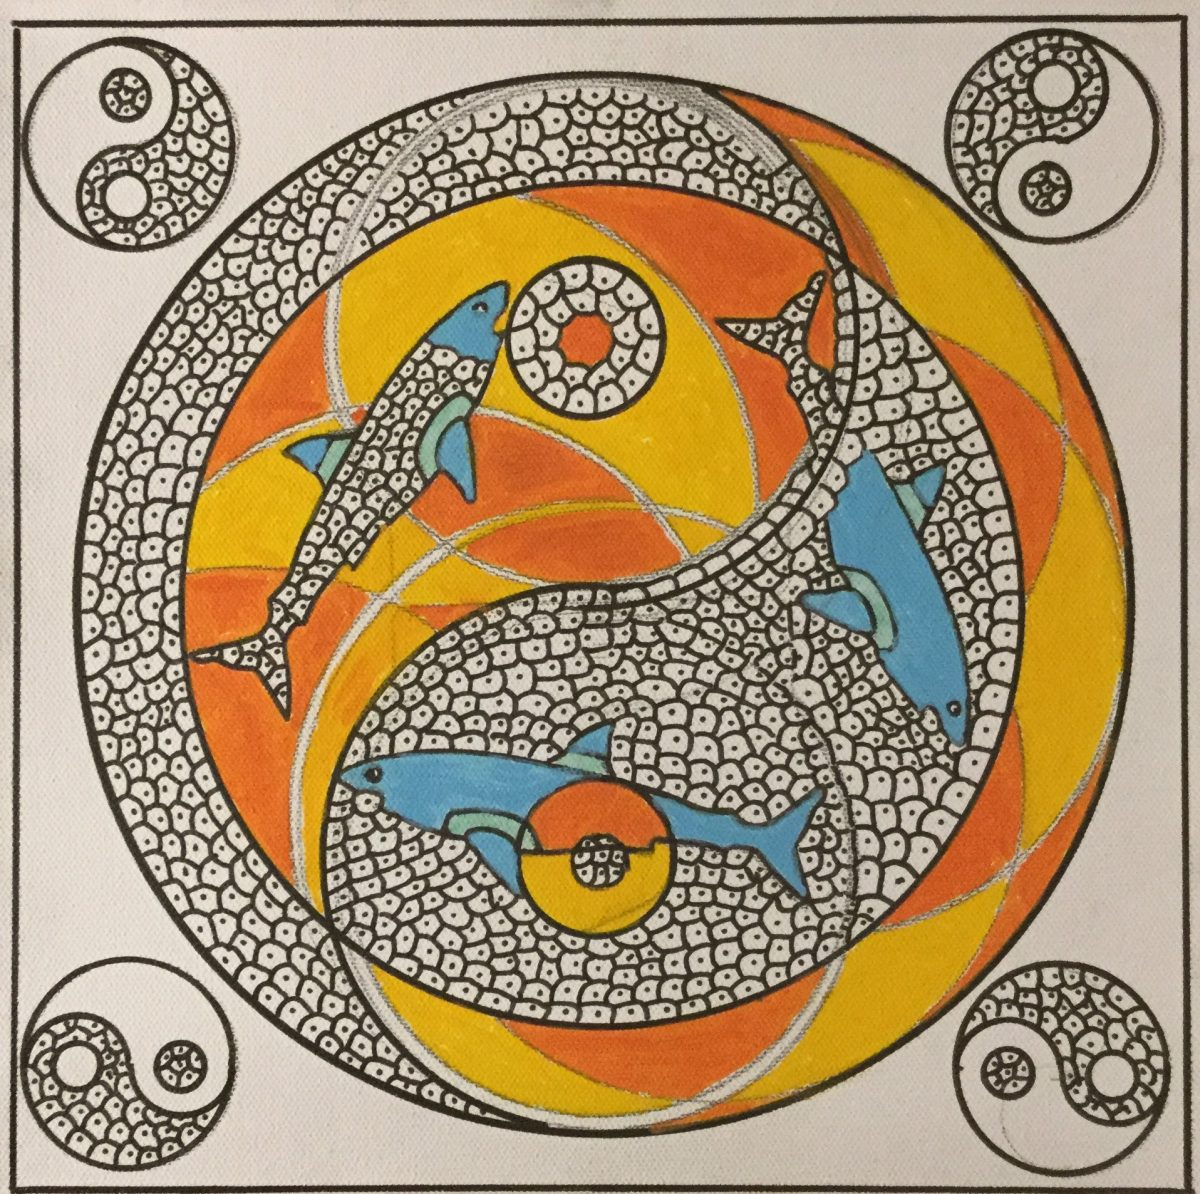 A painting depicting a geometric design of 3 sharks and small circles inside of a larger circle with blue, orange and yellow.  In each corner of the painting there is a yin-yang symbol.